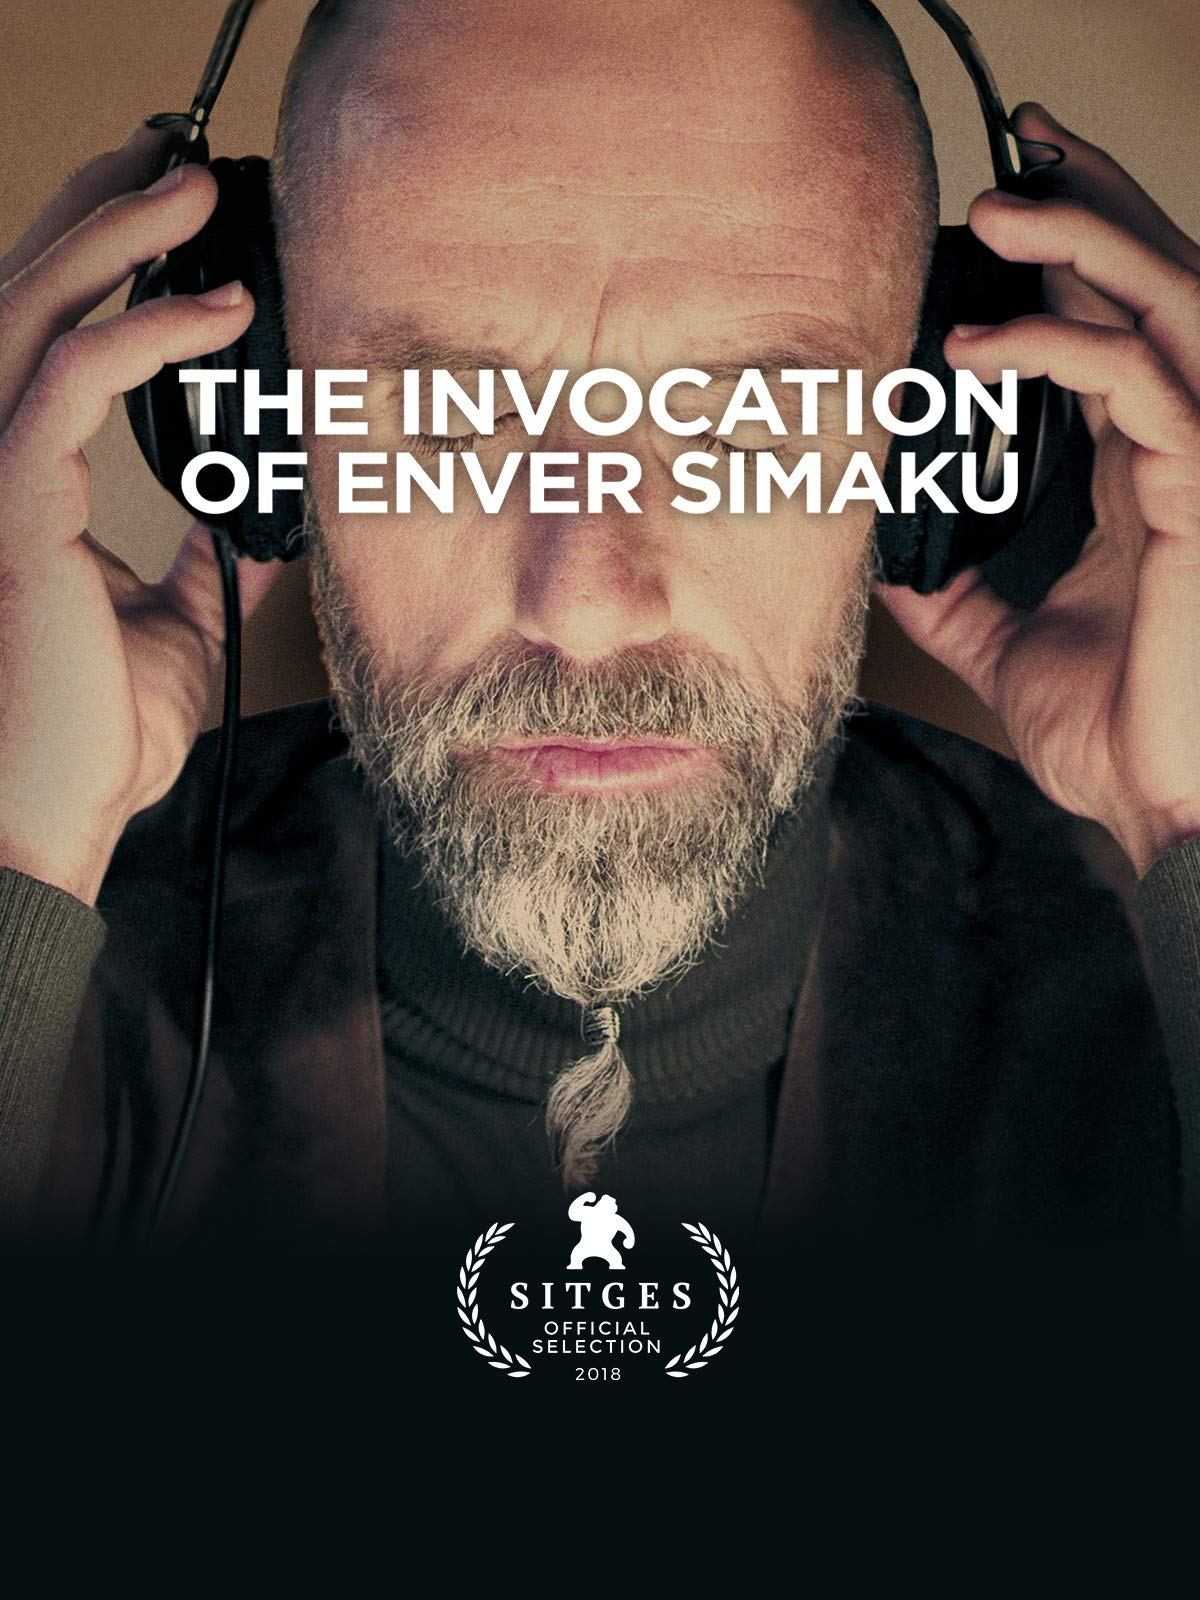 The Invocation of Enver Simaku